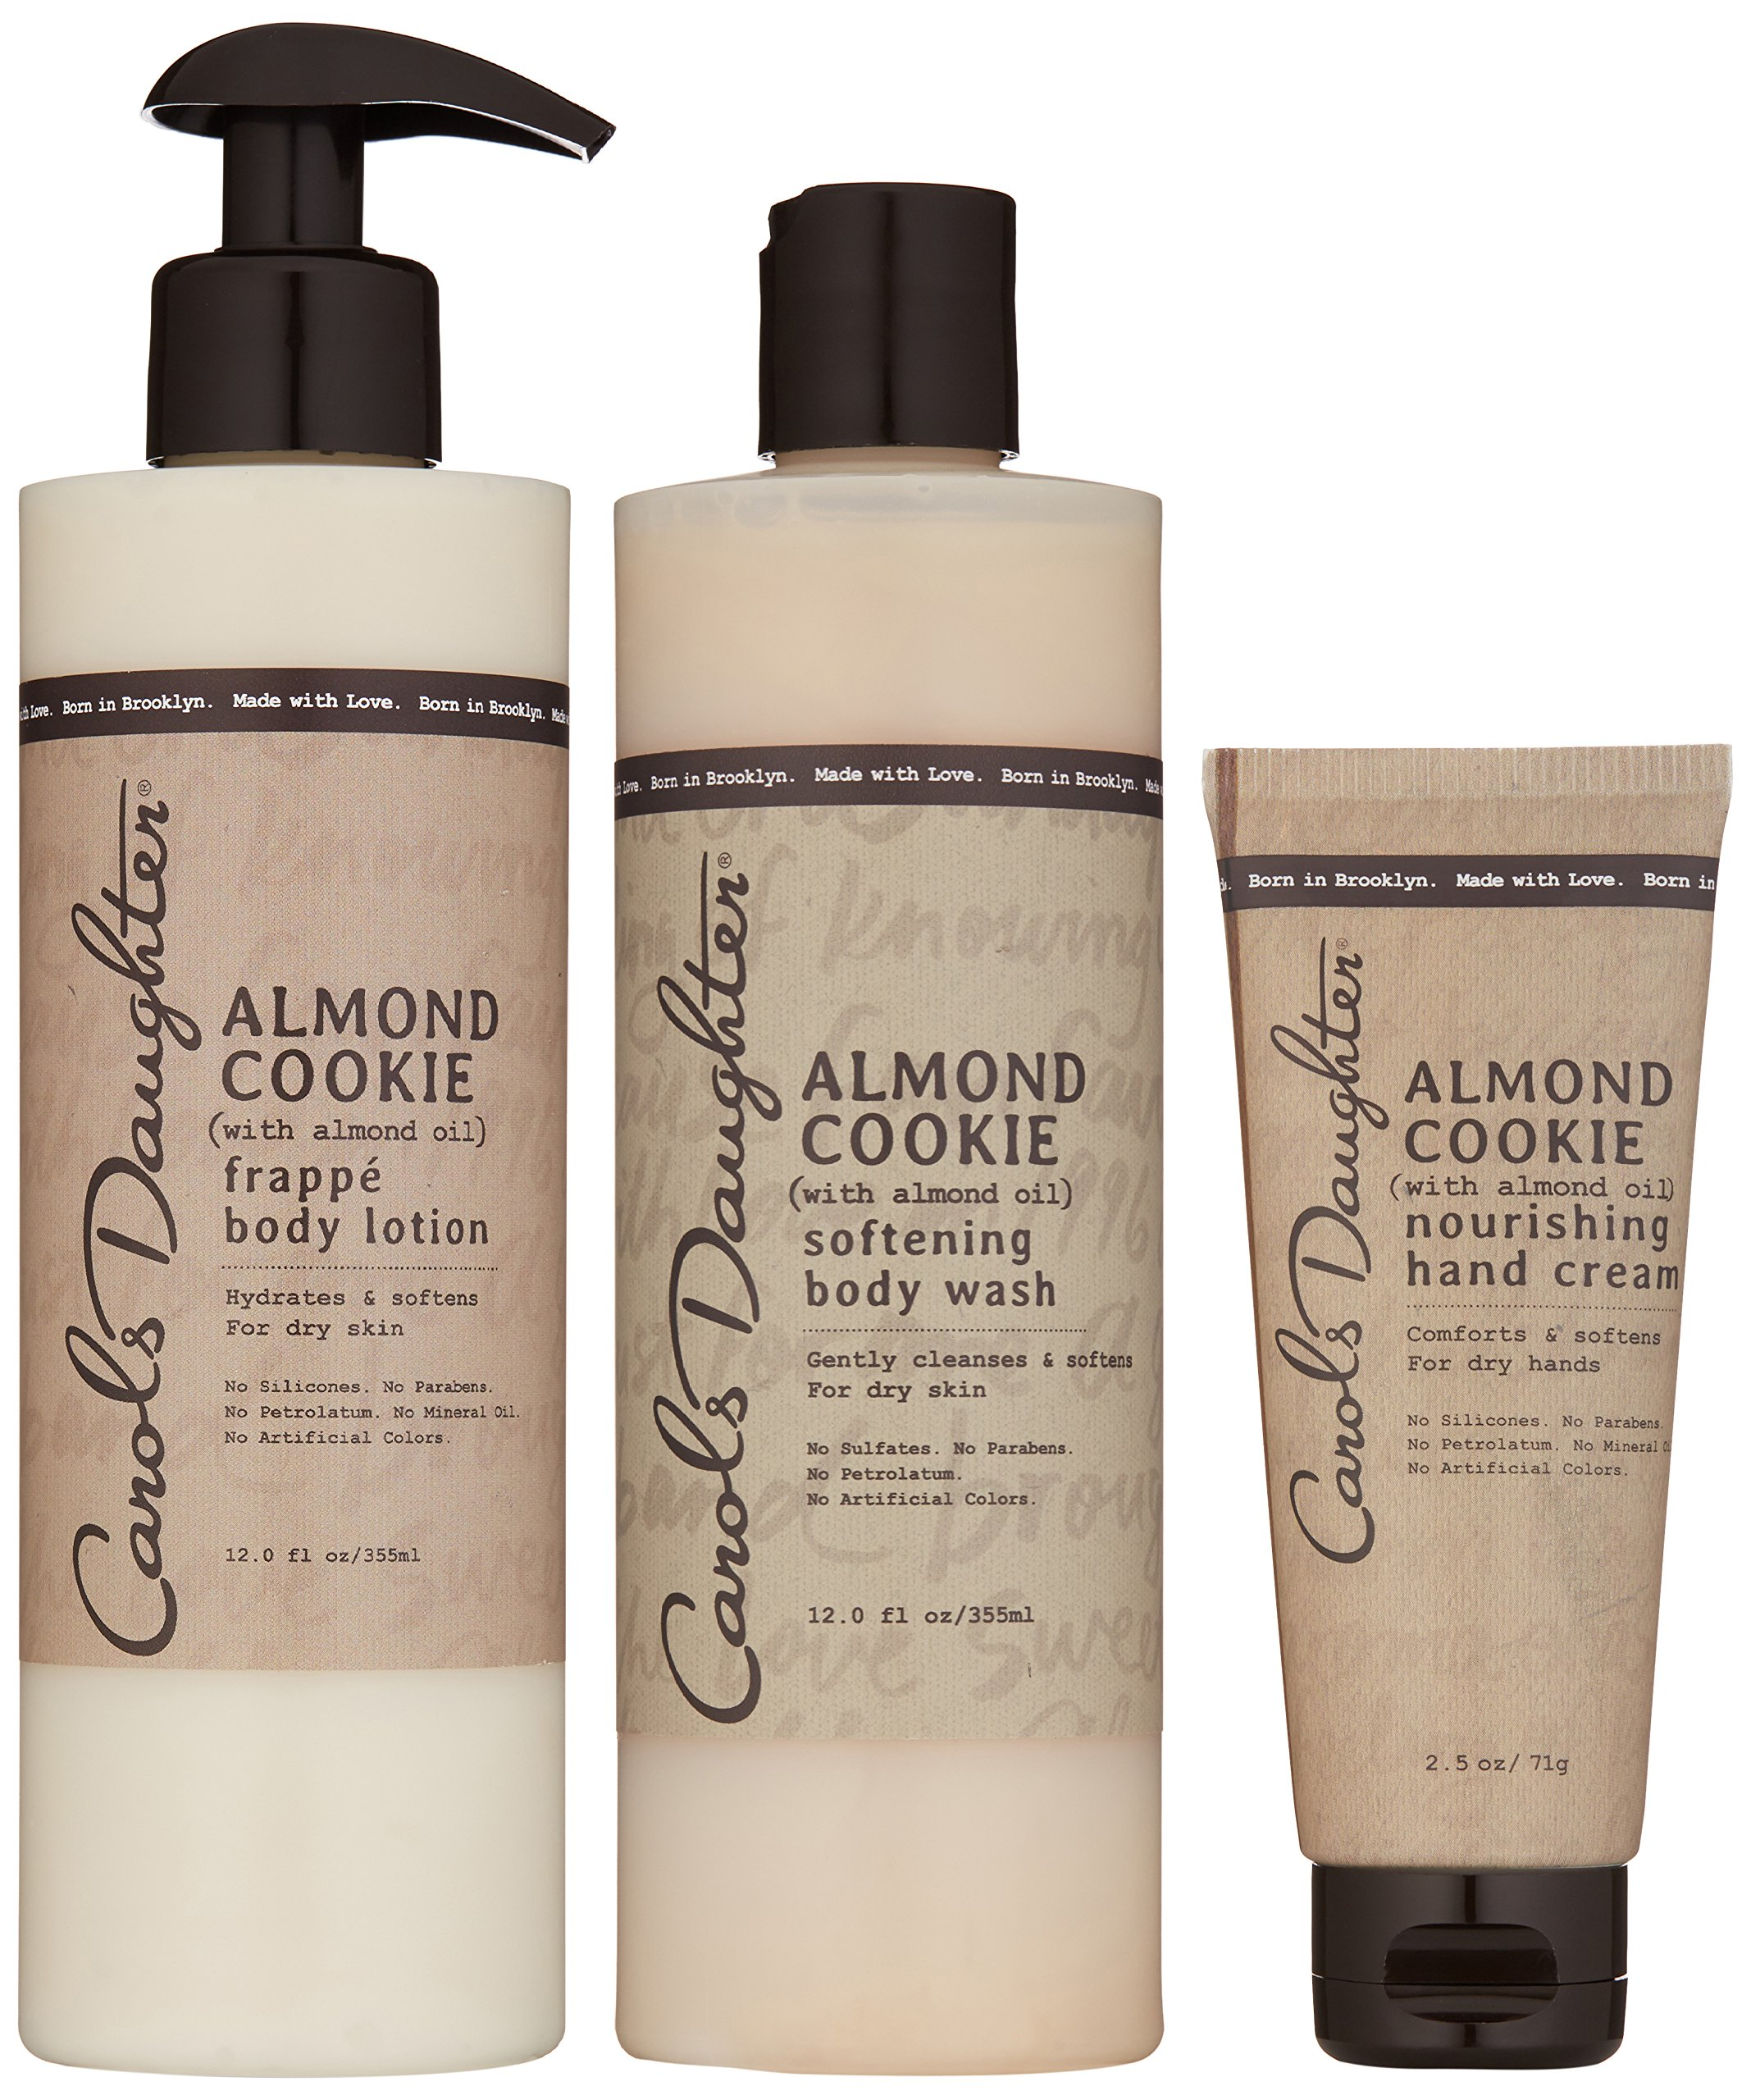 Carols Daughter Almond Cookie Body Gift Set for Dry Skin